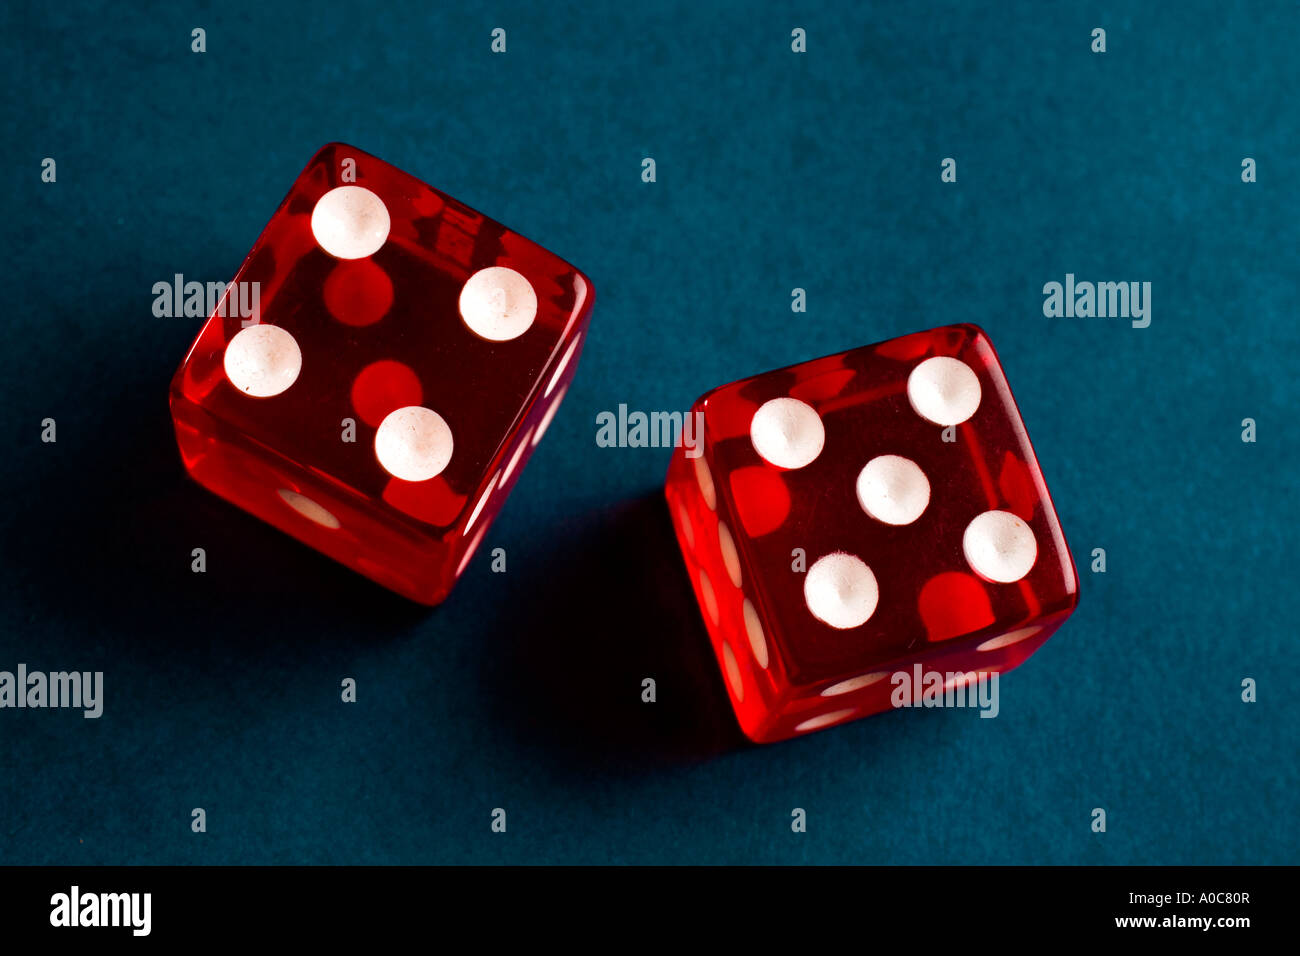 a pair of dice showing nine - Stock Image